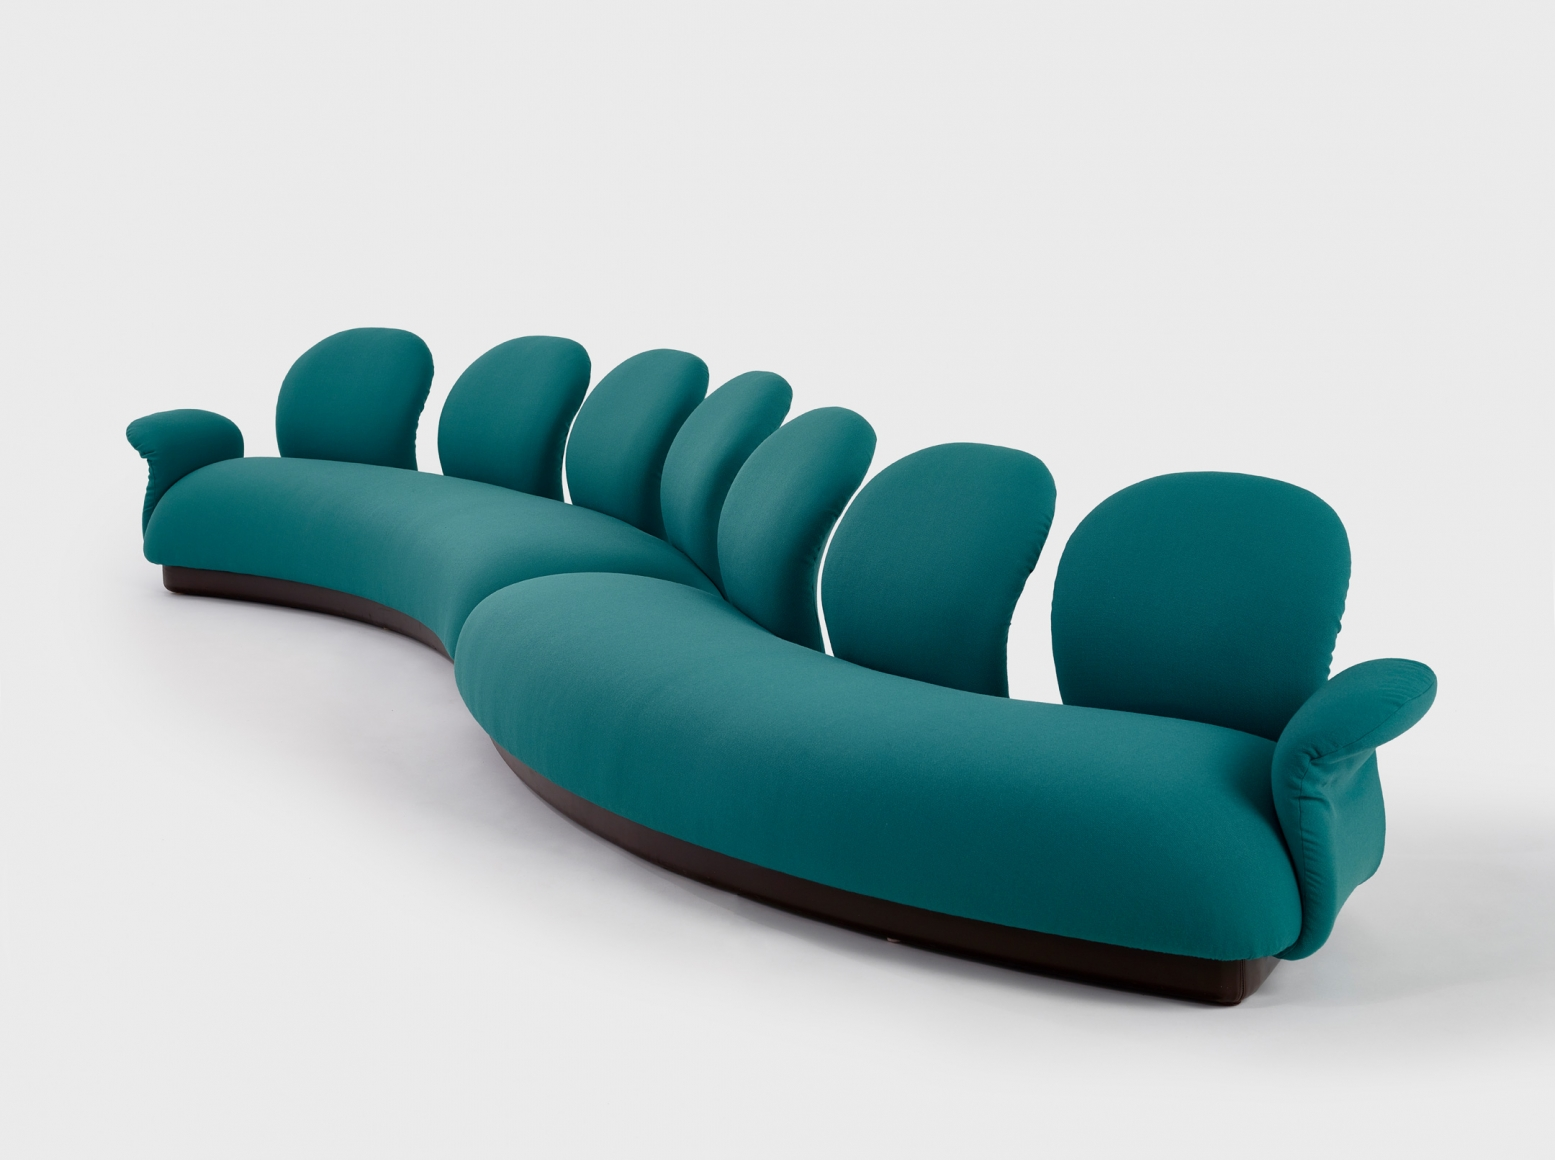 Pierre Paulin Sofa Pierre Paulin Works Demisch Danant